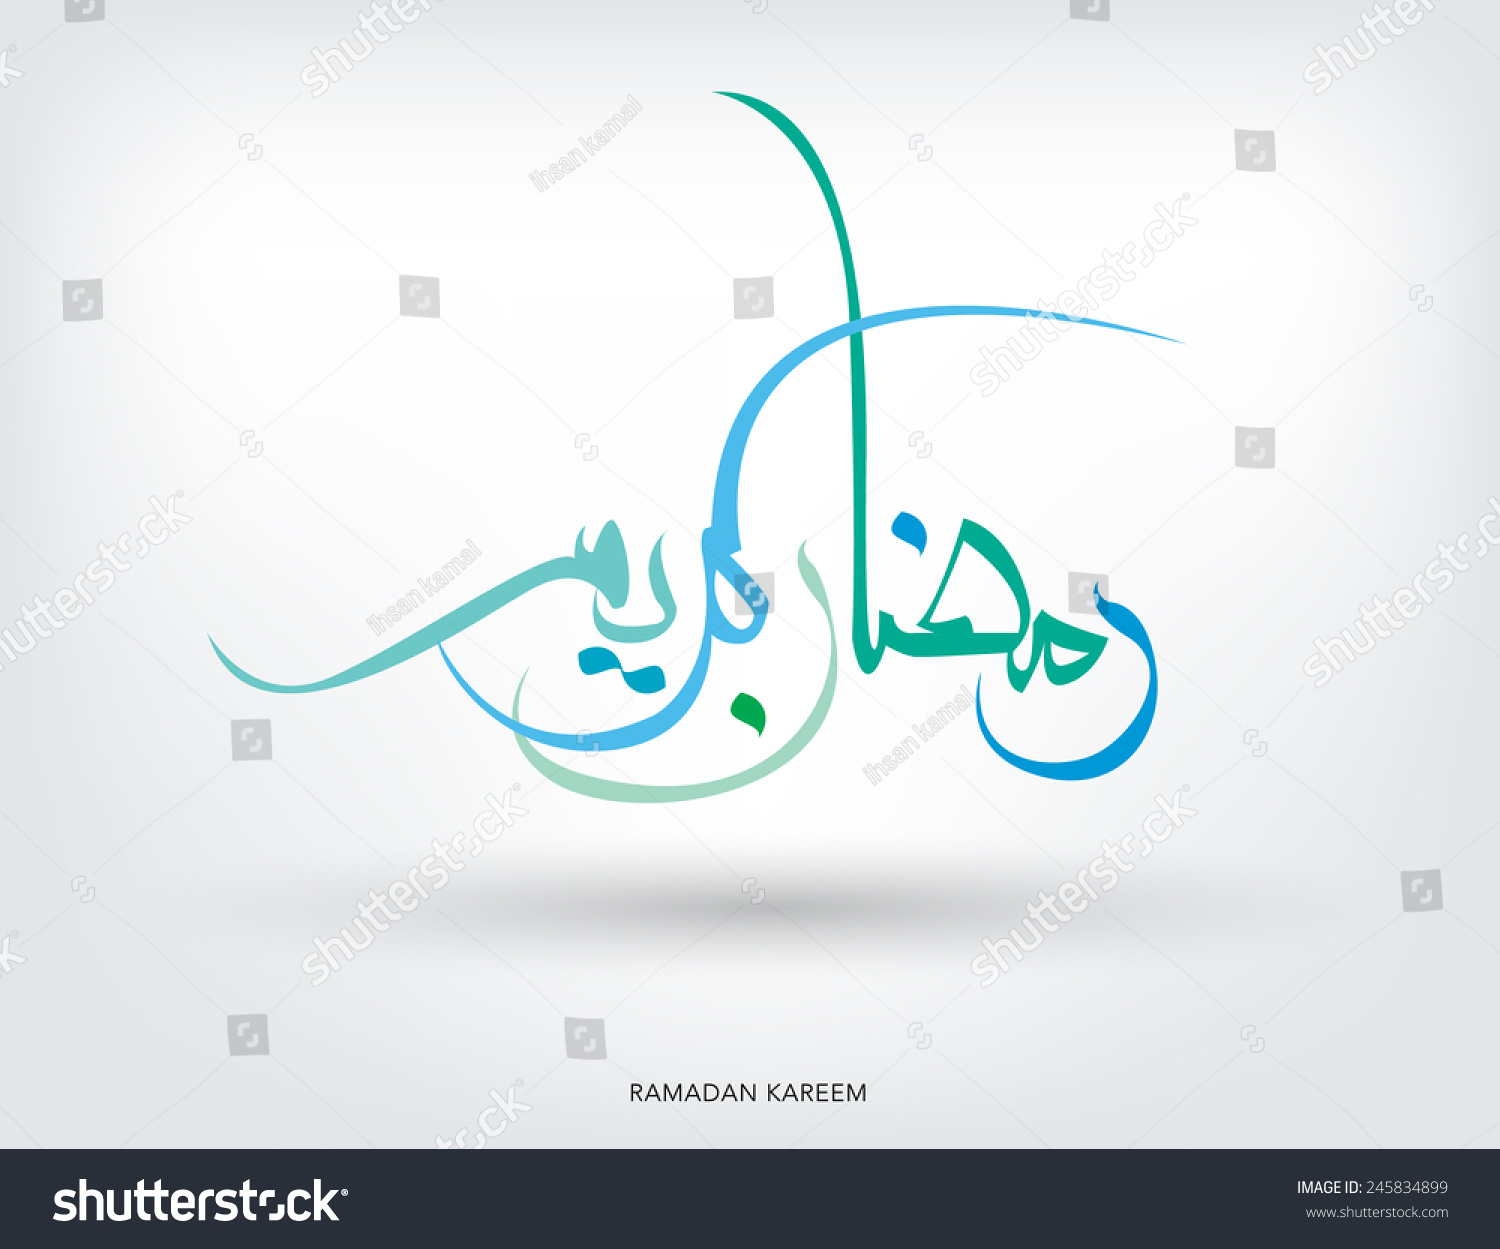 Islamic greeting arabic text holy month stock vector 245834899 islamic greeting arabic text holy month stock vector 245834899 shutterstock m4hsunfo